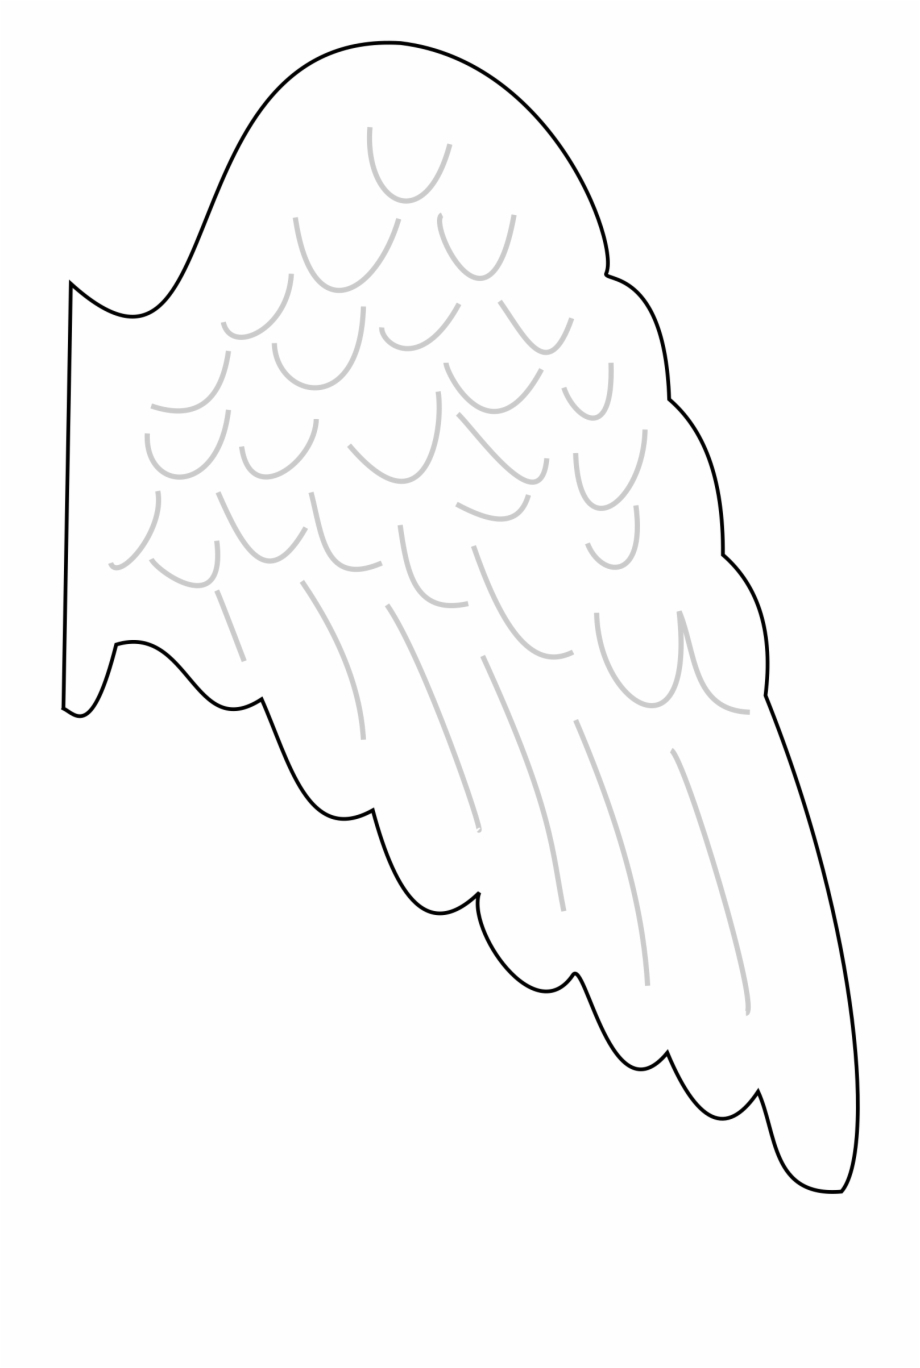 Image Transparent Download S Big Image Png - Angel Wing Template - Angel Wings Template Printable Free